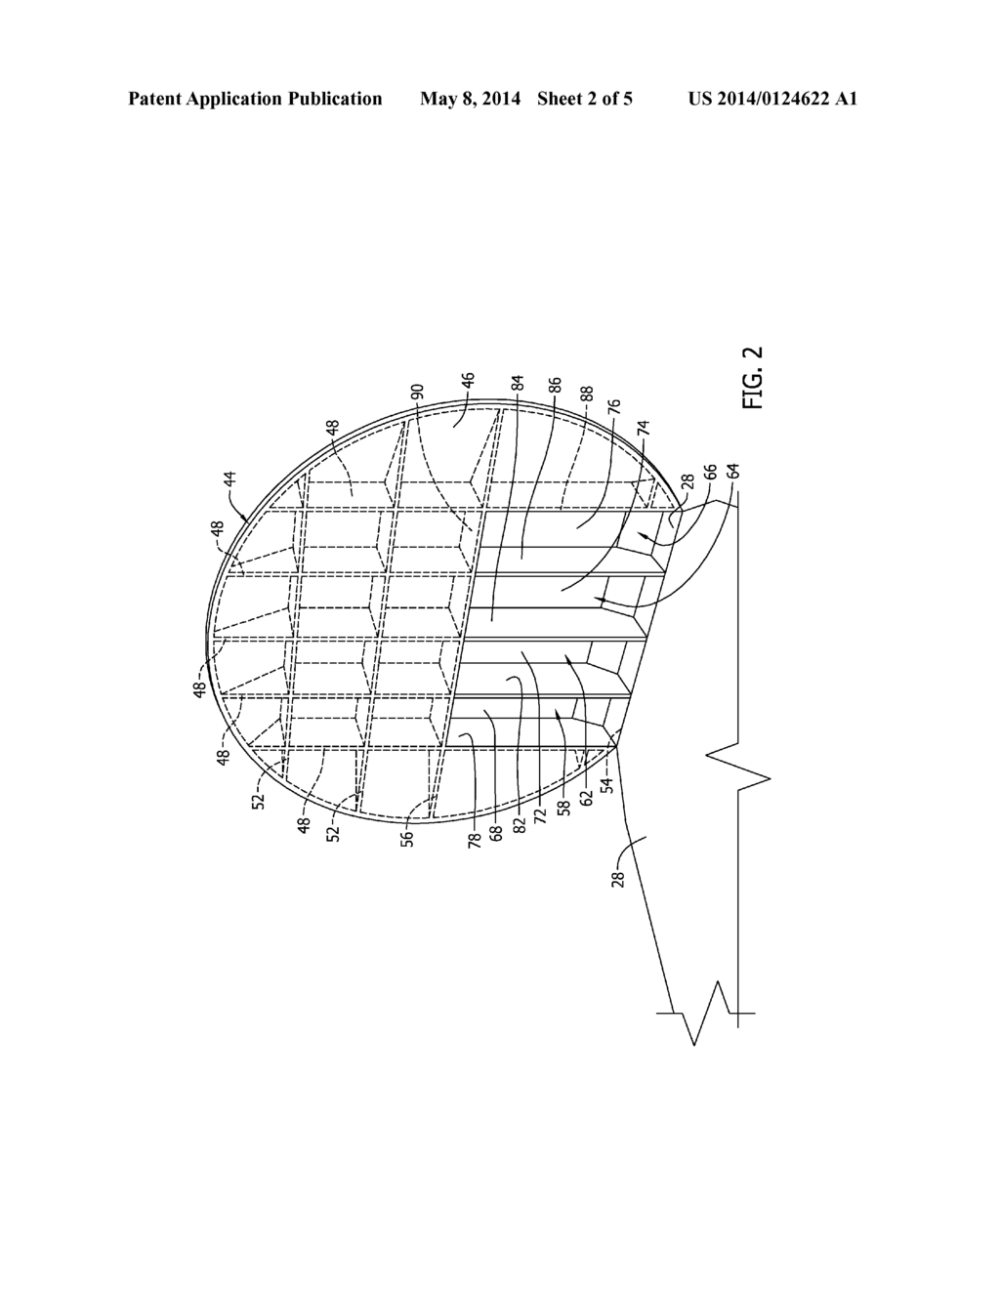 medium resolution of  bulkhead wall surface and a galley moved rearwardly into the recessed cavity increasing floor space in front of the galley diagram schematic